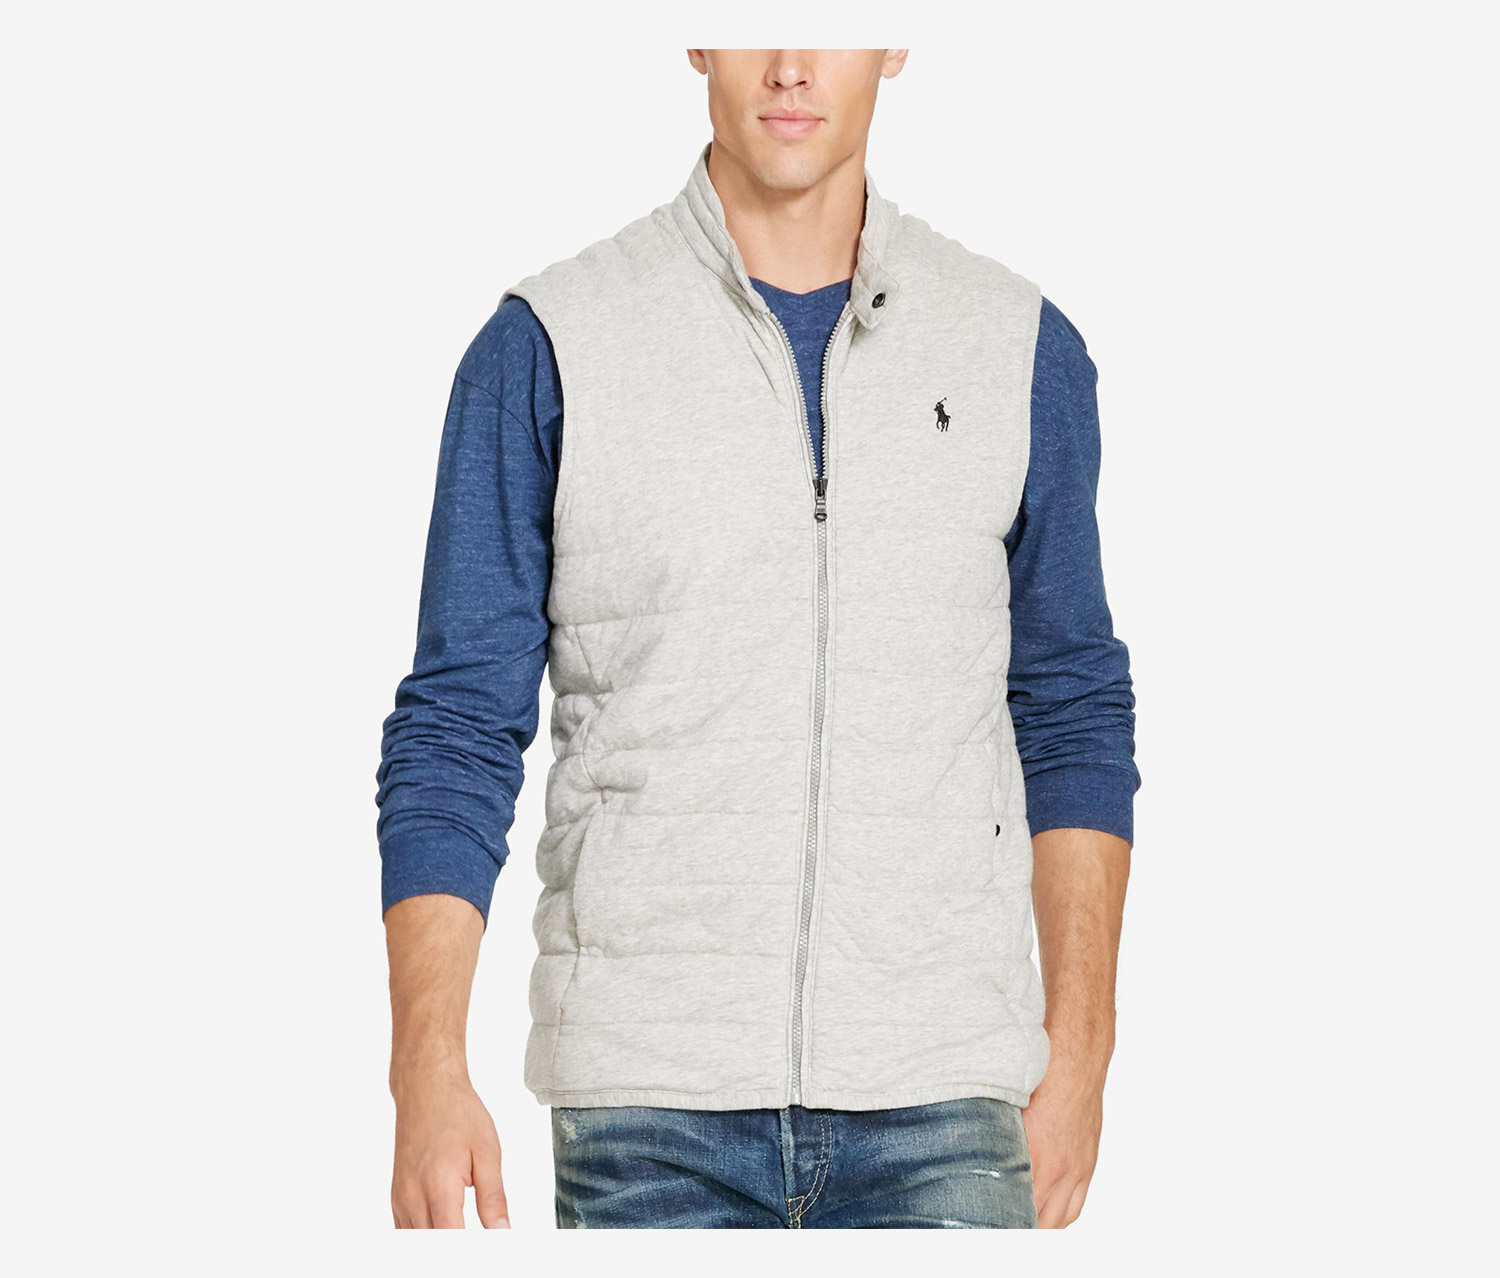 Tall Lauren Jersey Mens Ralph Bigamp; Polo Quilted Shop EYD29bHIeW